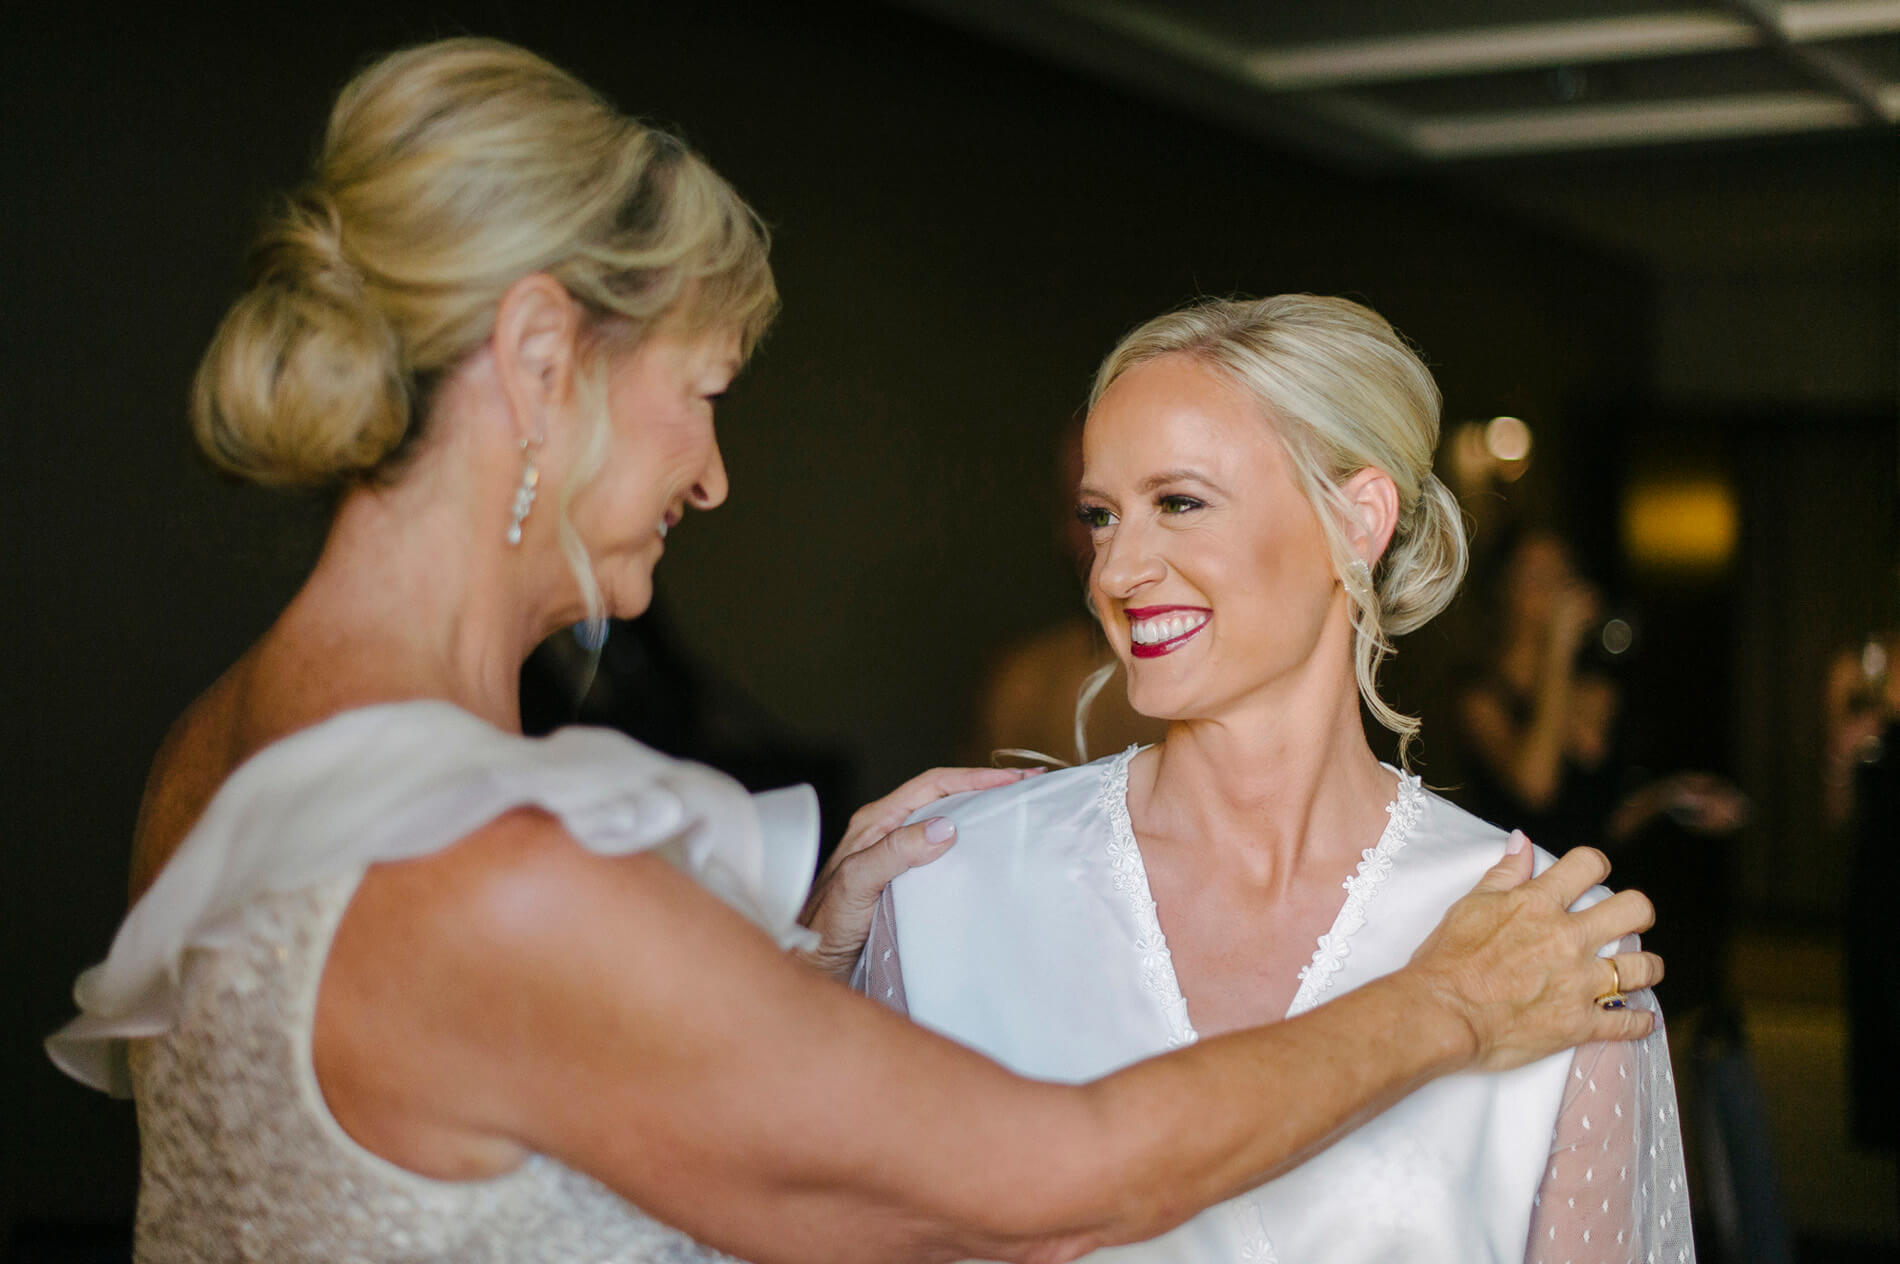 bride and mother sharing smiles before wedding